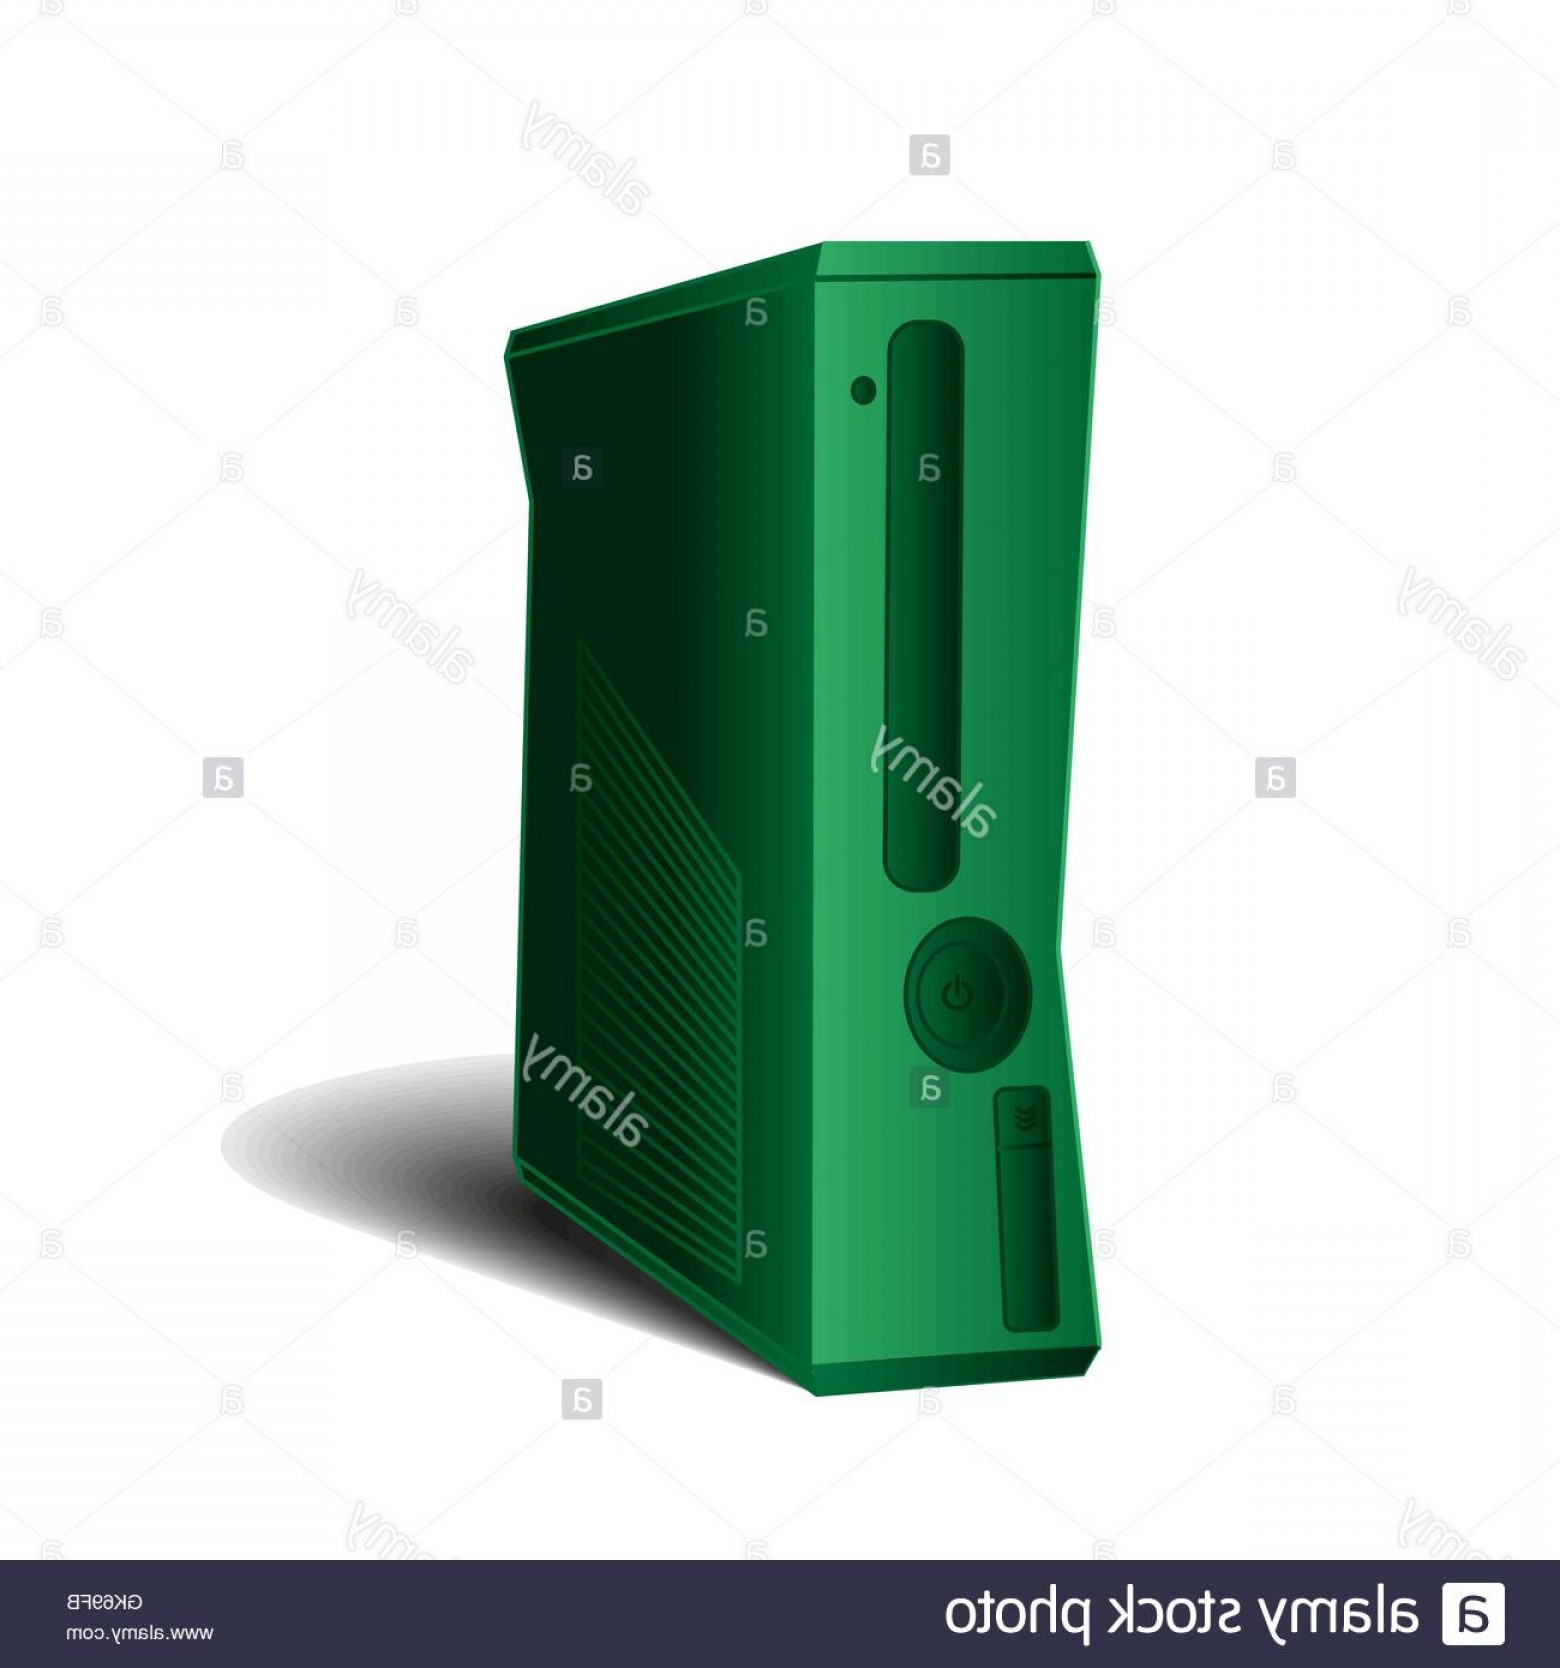 Xbox 360 Vector: Stock Photo Game Console For Gamers And Games Computer Case System Unit